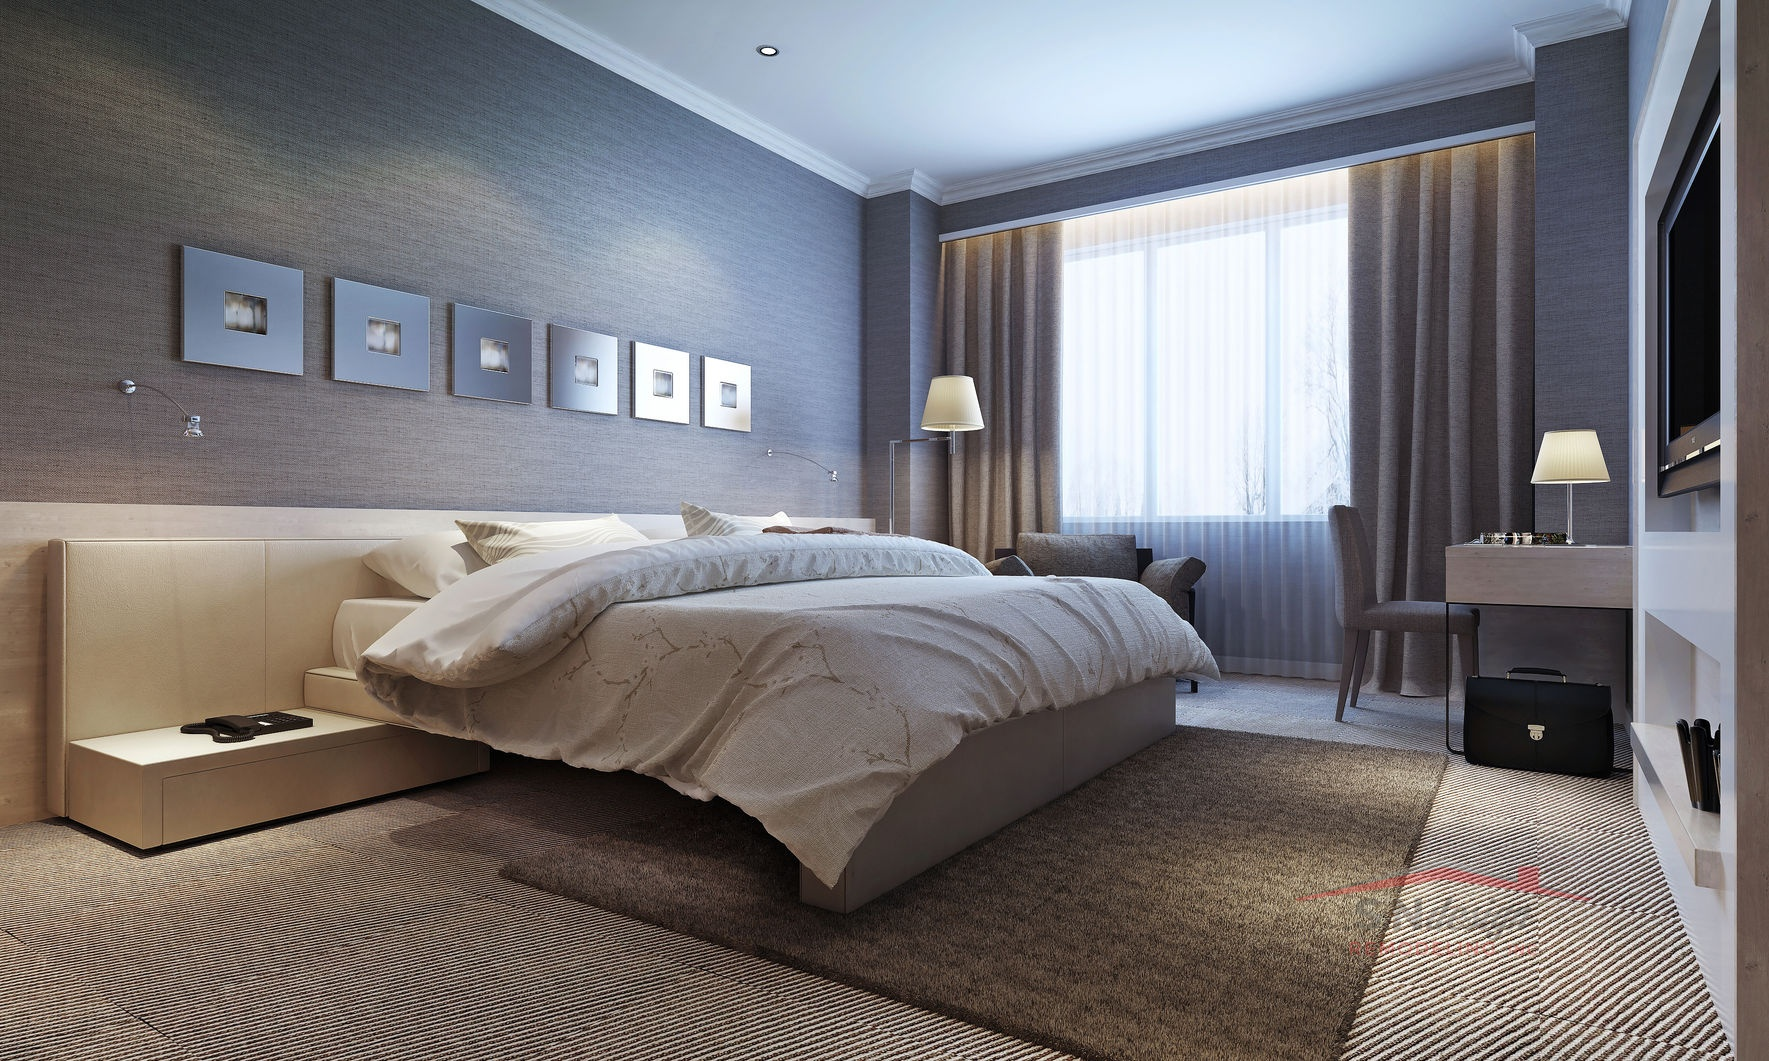 47276315 - bedroom interior, modern style. 3d images